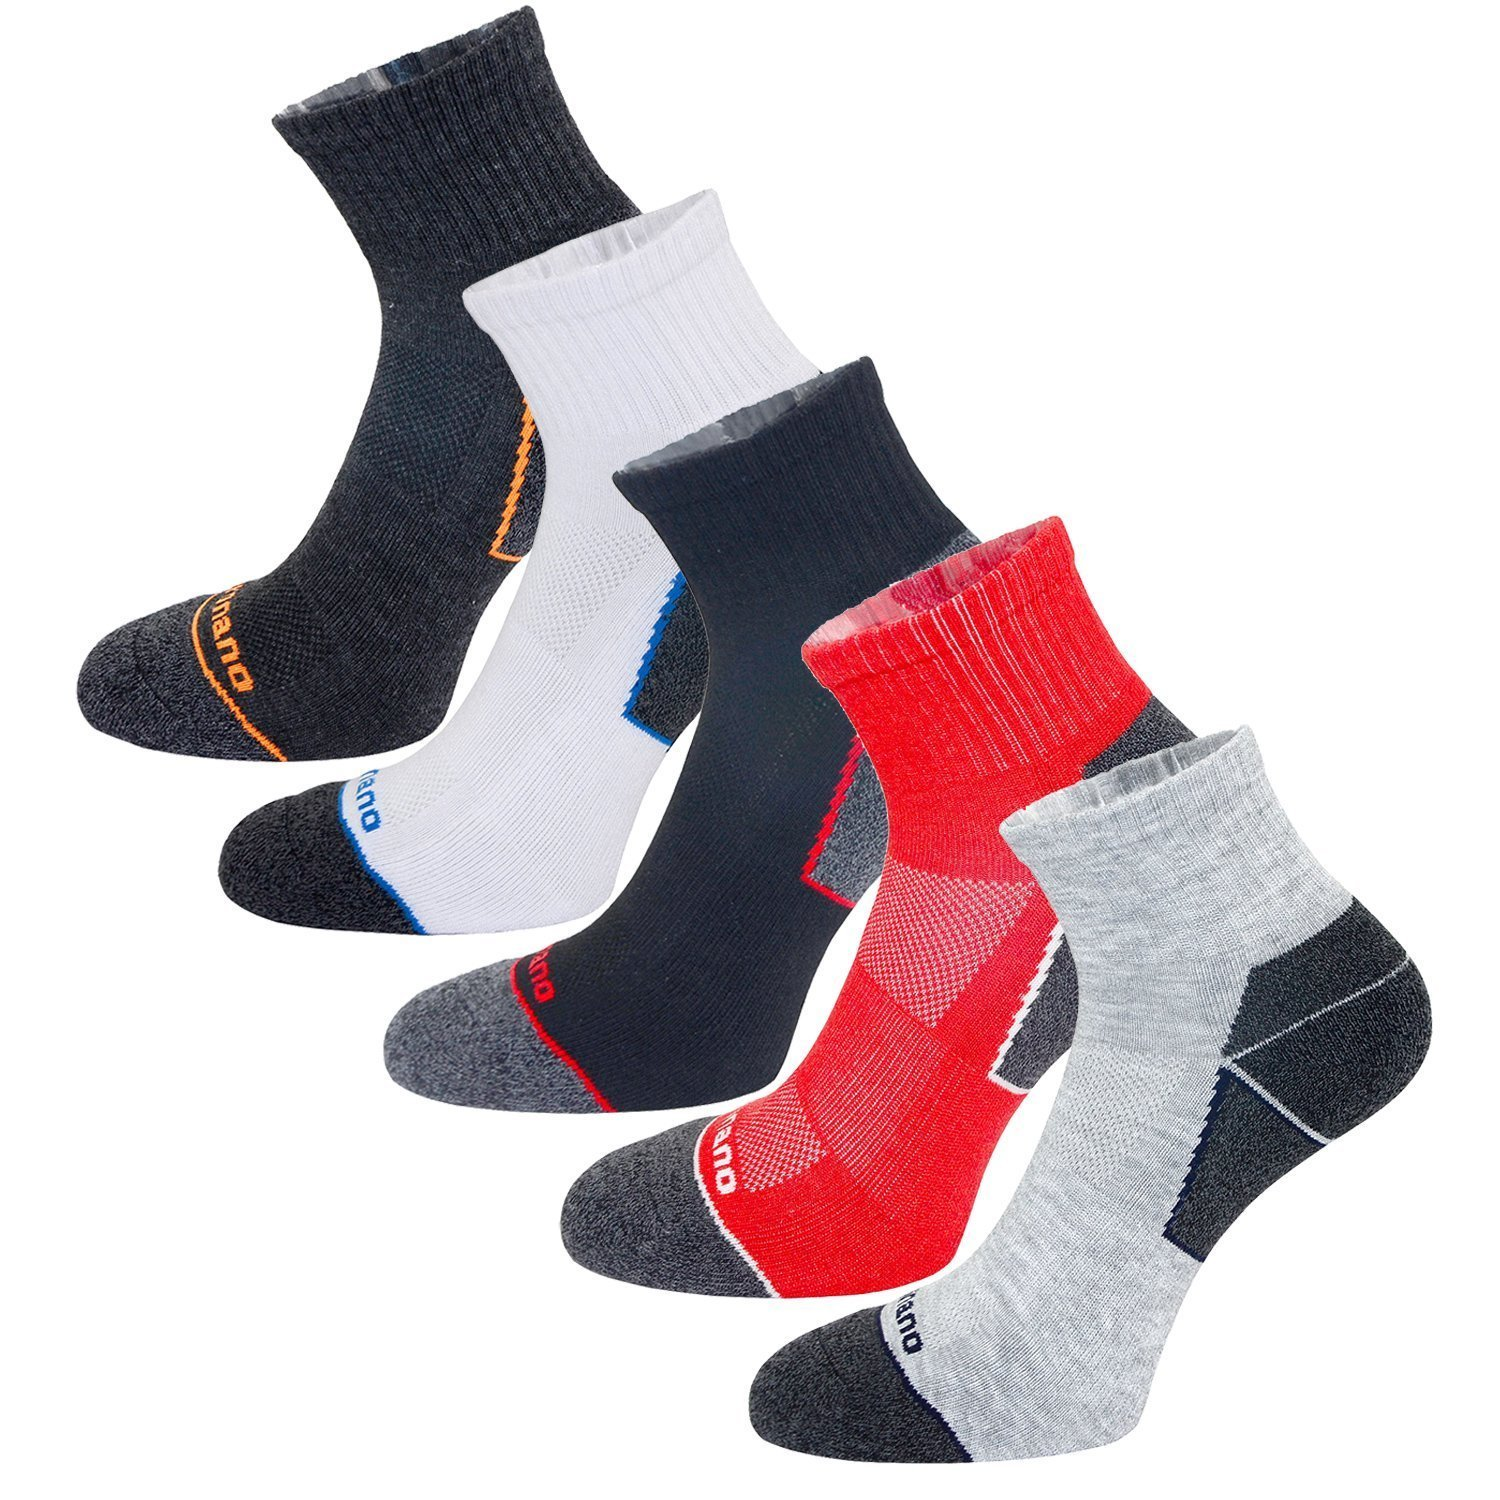 Aaronano 5 Pairs Men Half Cushioned Terry Sport Cycling Running Socks Size(5.5-11 UK)